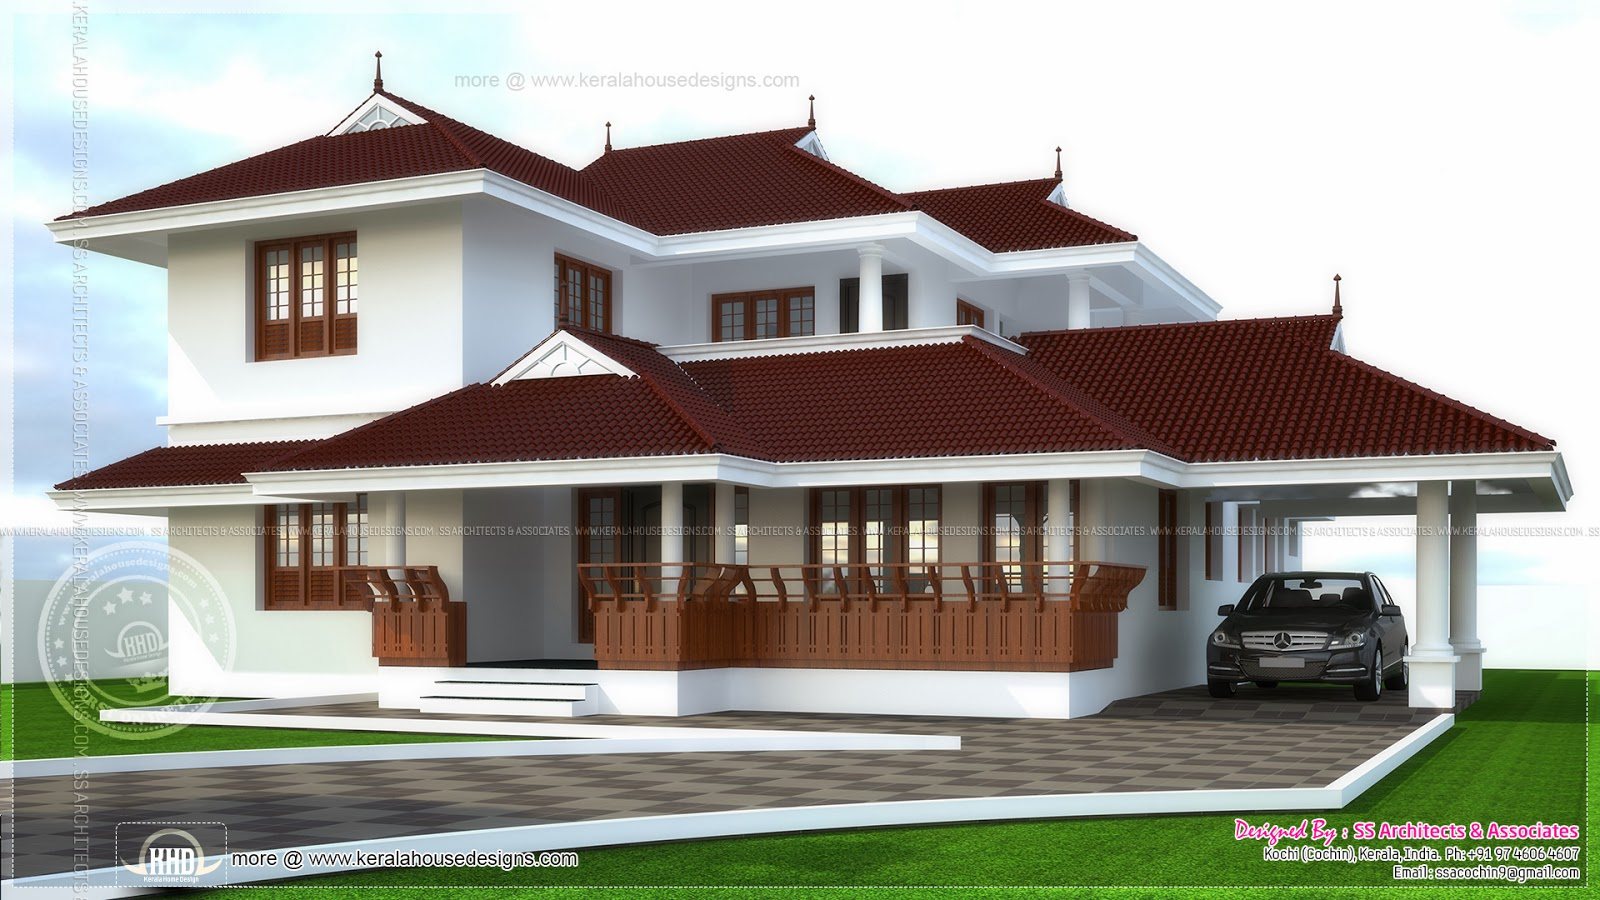 4 bedroom traditional kerala house design for Kerala house plans 4 bedroom